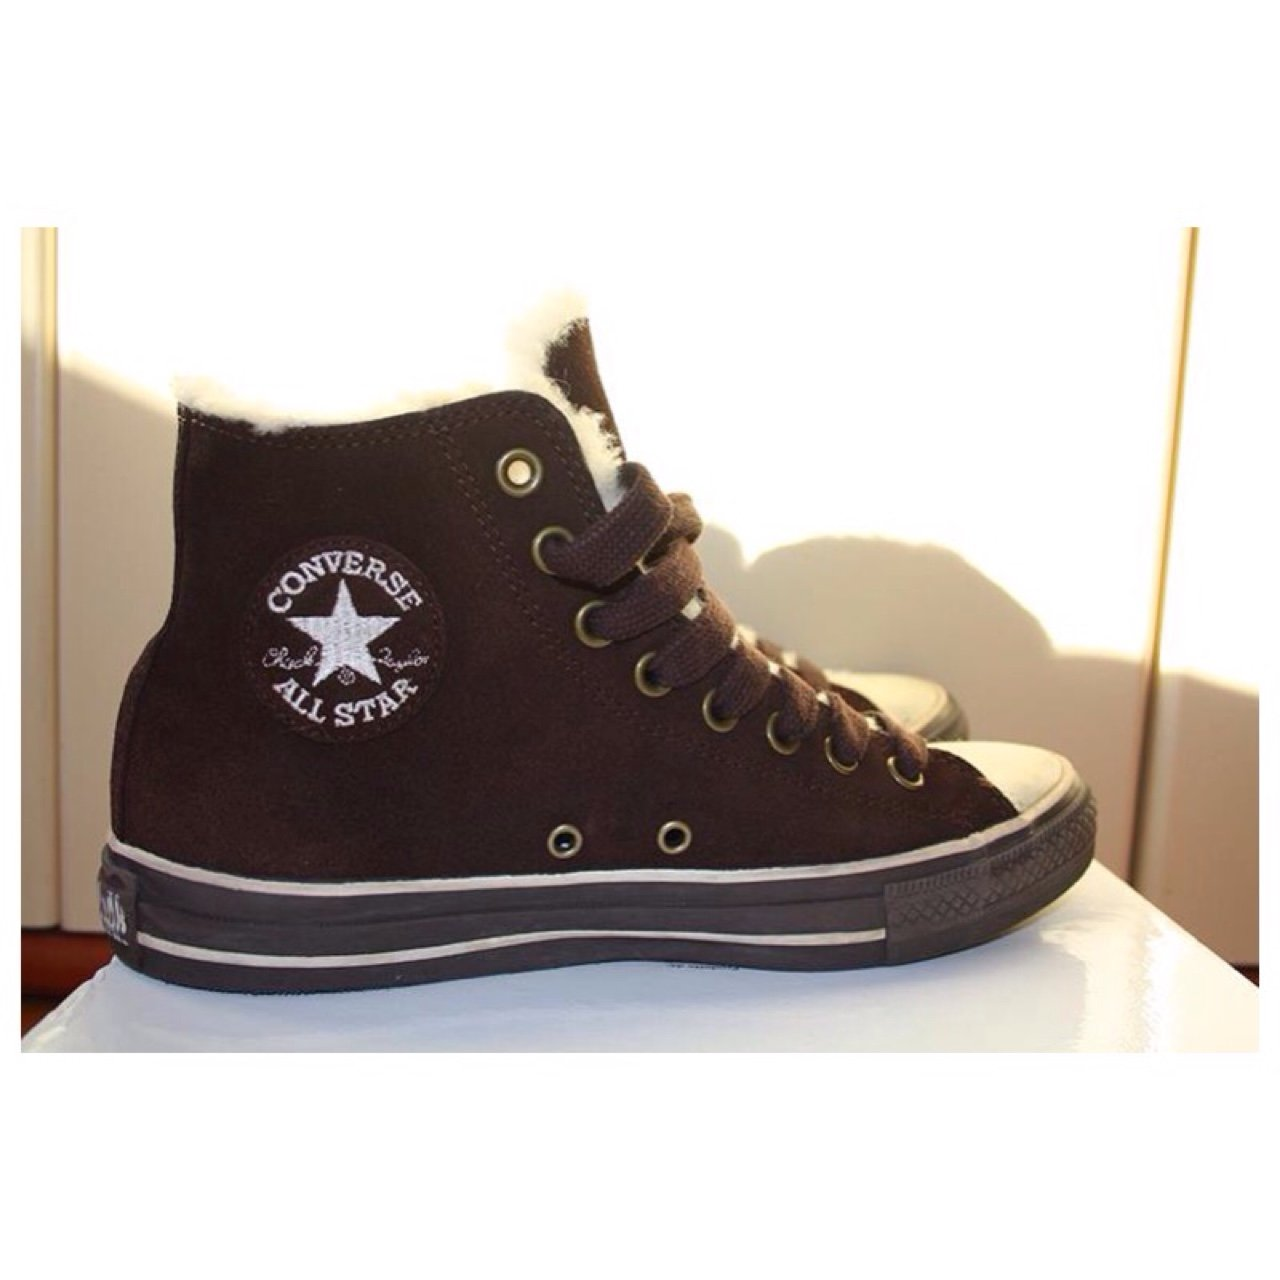 converse all star marroni off 64% - www.olivier-ansel-cours-de-danse.com 15ea8ab5542